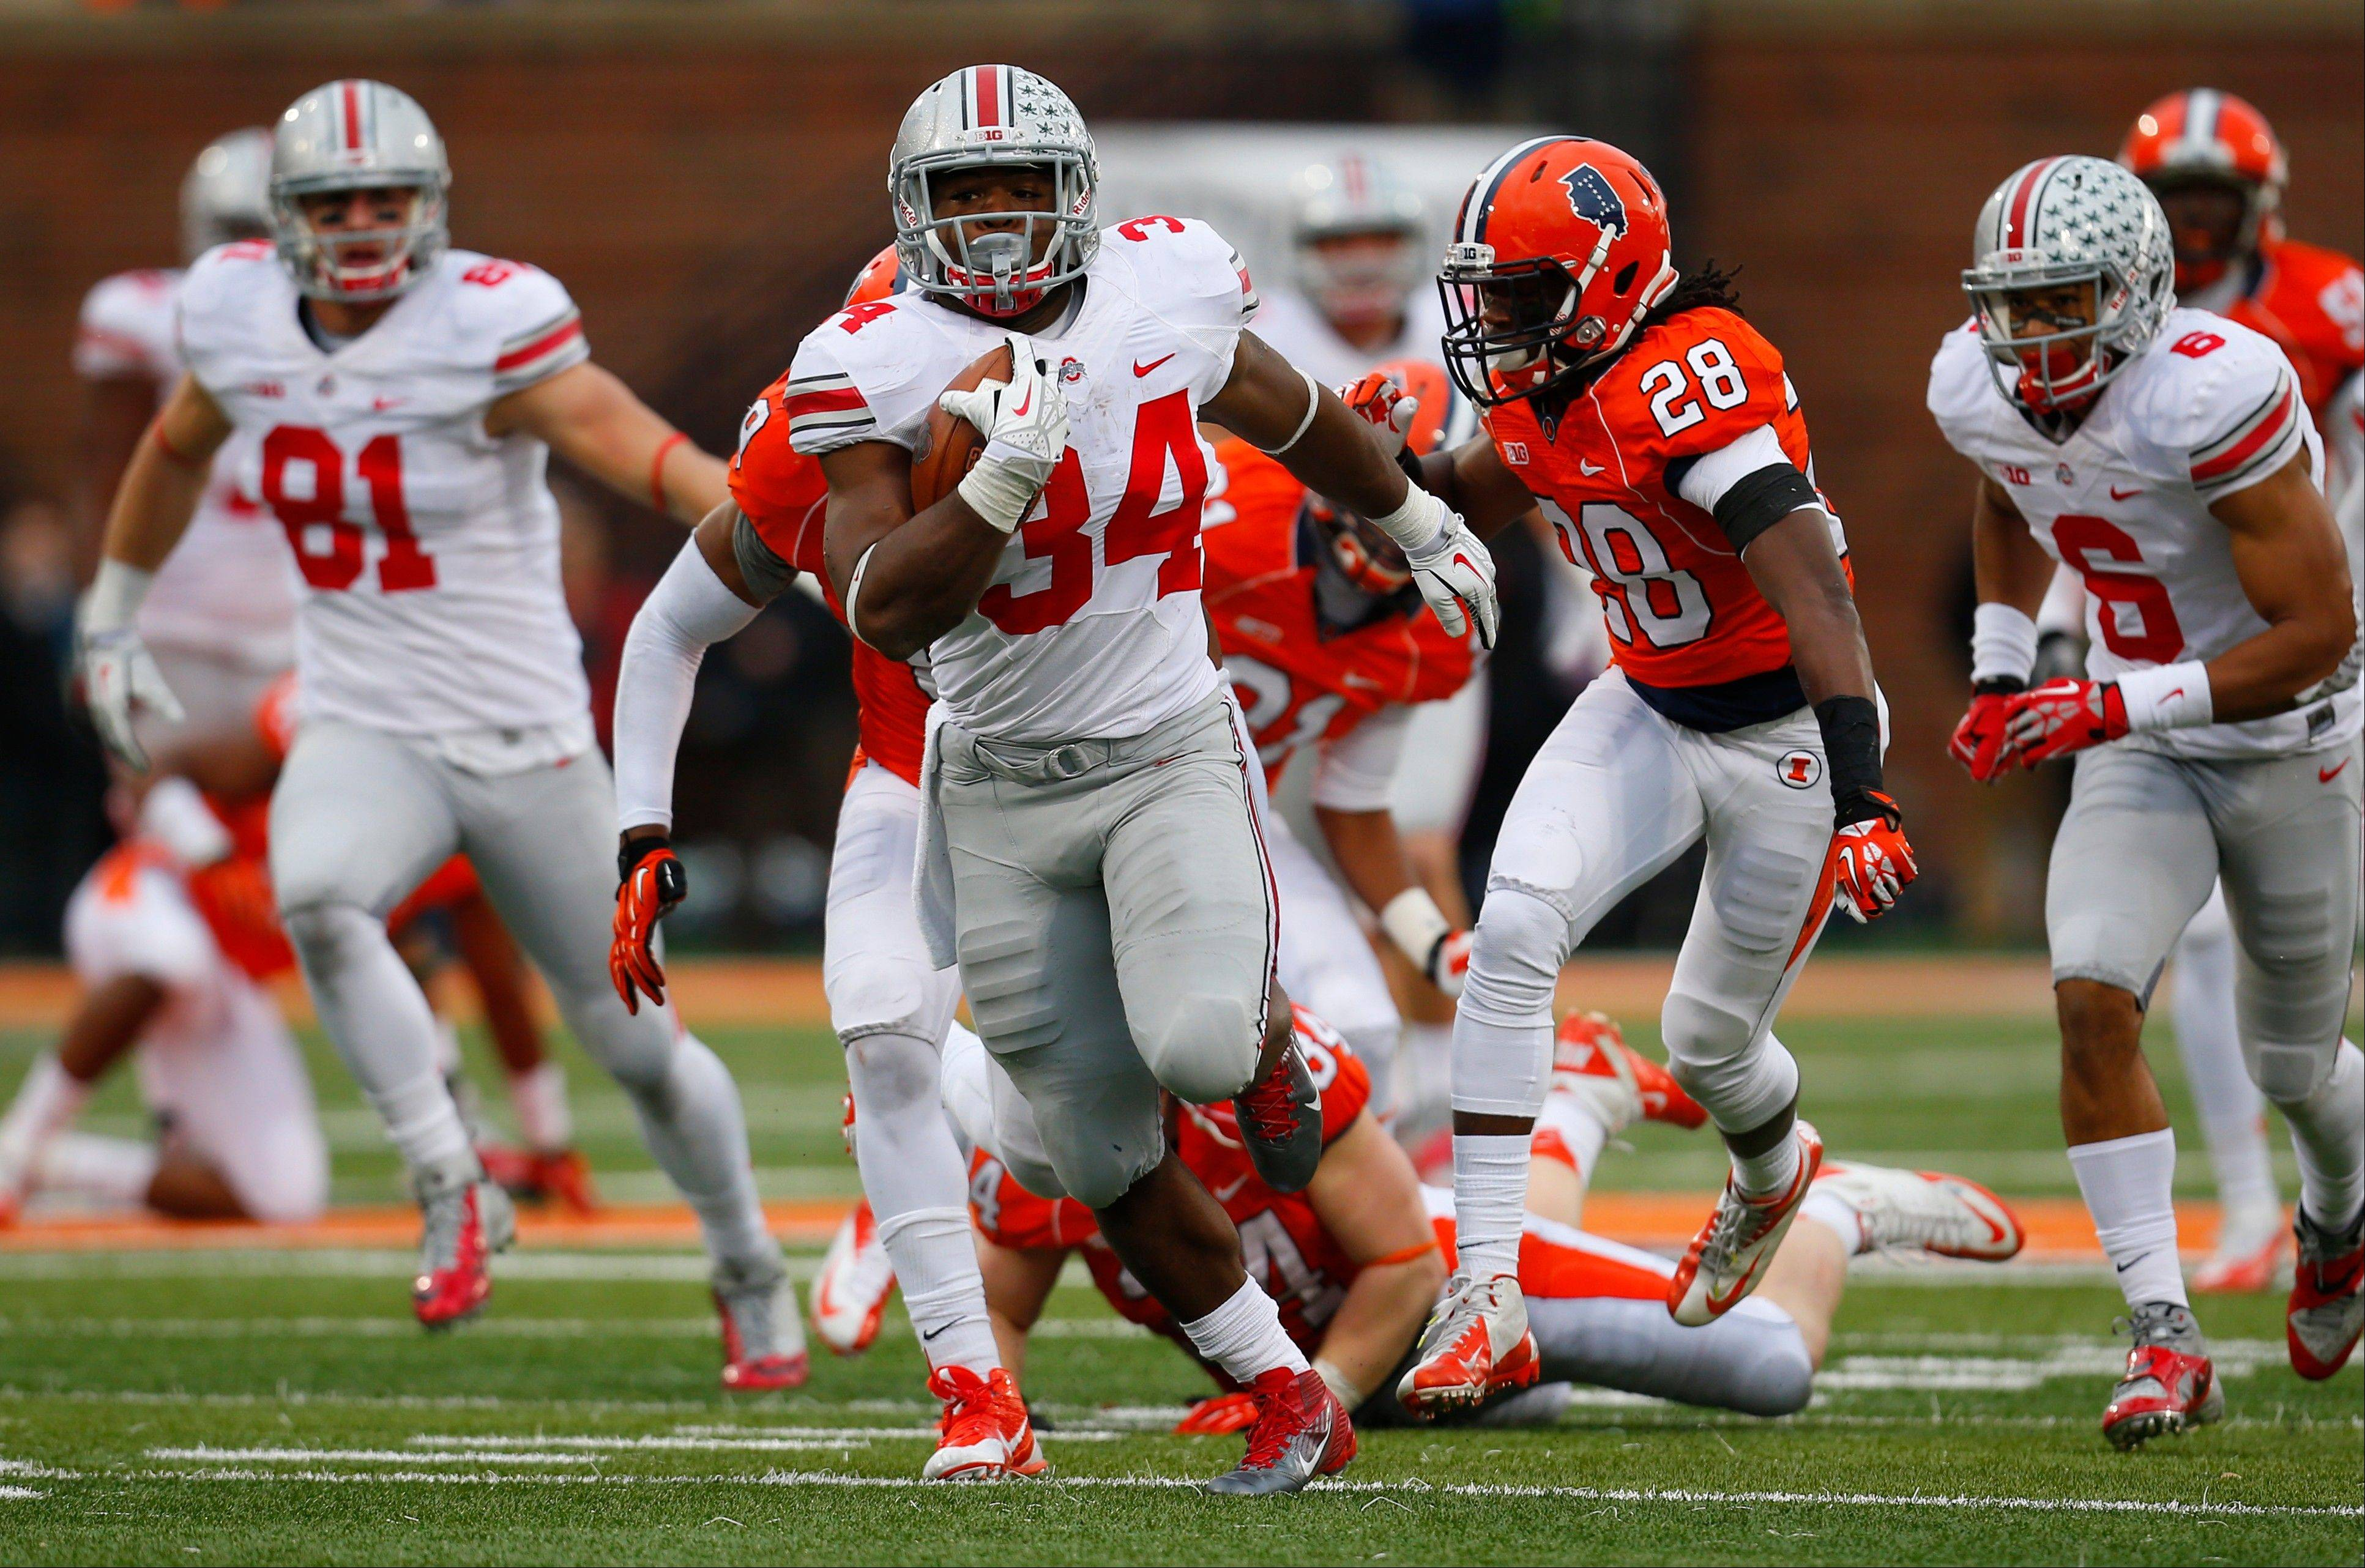 Ohio State running back Carlos Hyde (34) runs for a 51-yard touchdown during the second half of an NCAA college football game against Illinois on Saturday, Nov. 16, 2013, in Champaign, Ill. Ohio State won the game 60-35. (AP Photo/Jeff Haynes)